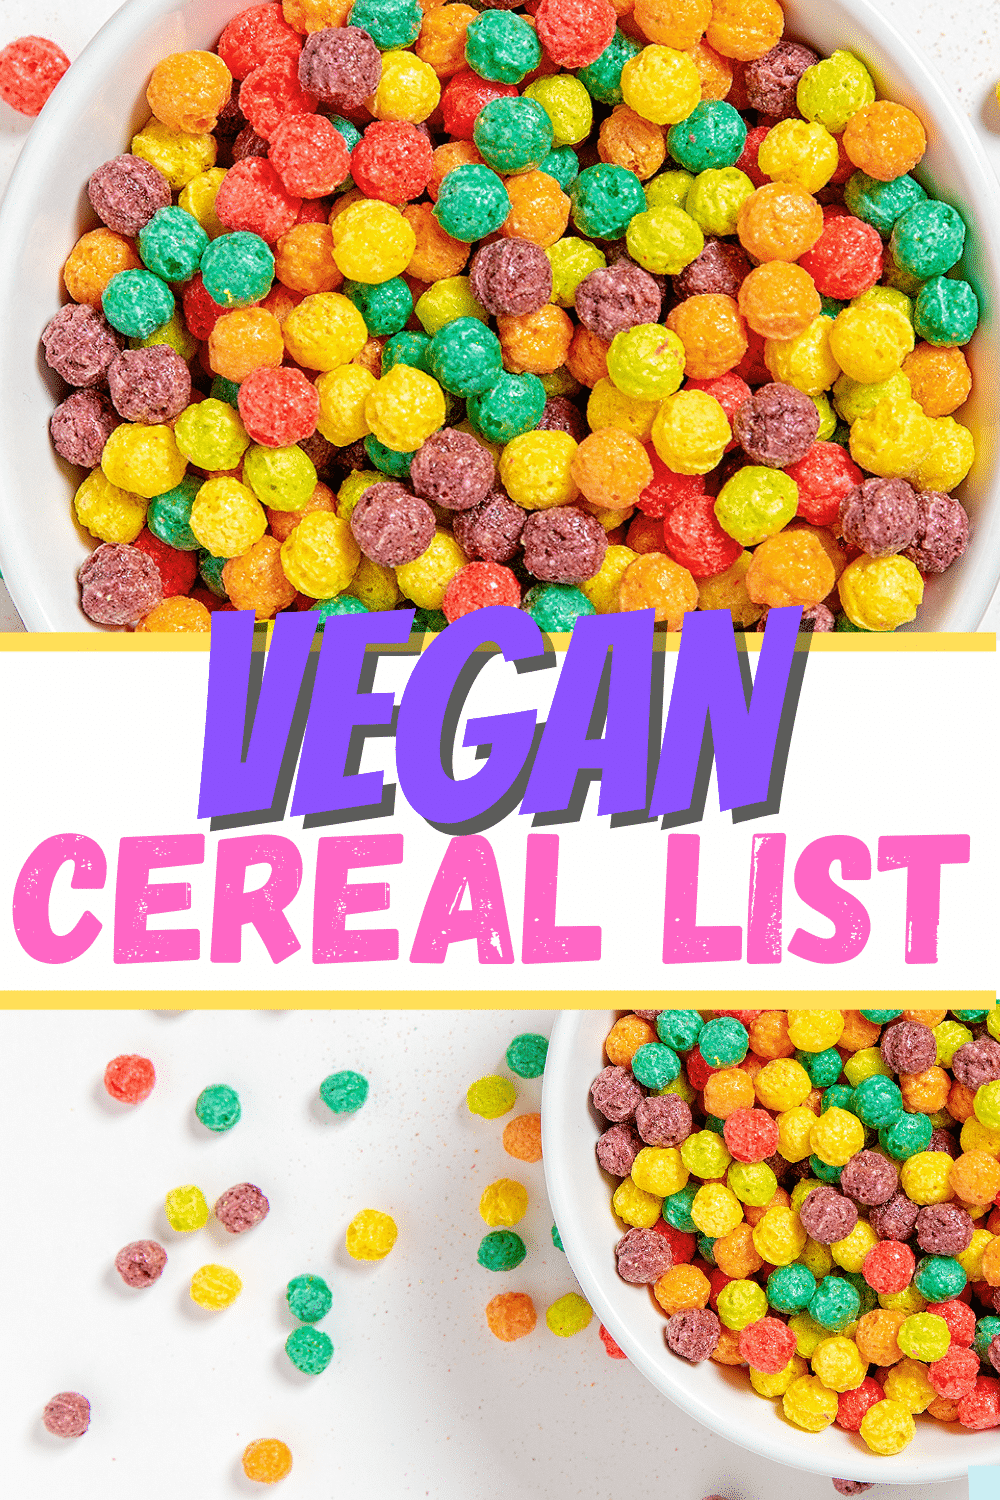 What cereal brands are vegan? If you love cereal but are wondering which option is truly a vegan cereal, we have a comprehensive list for you! #cereal #vegancereal #glutenfreecereal #veganglutenfreecereal